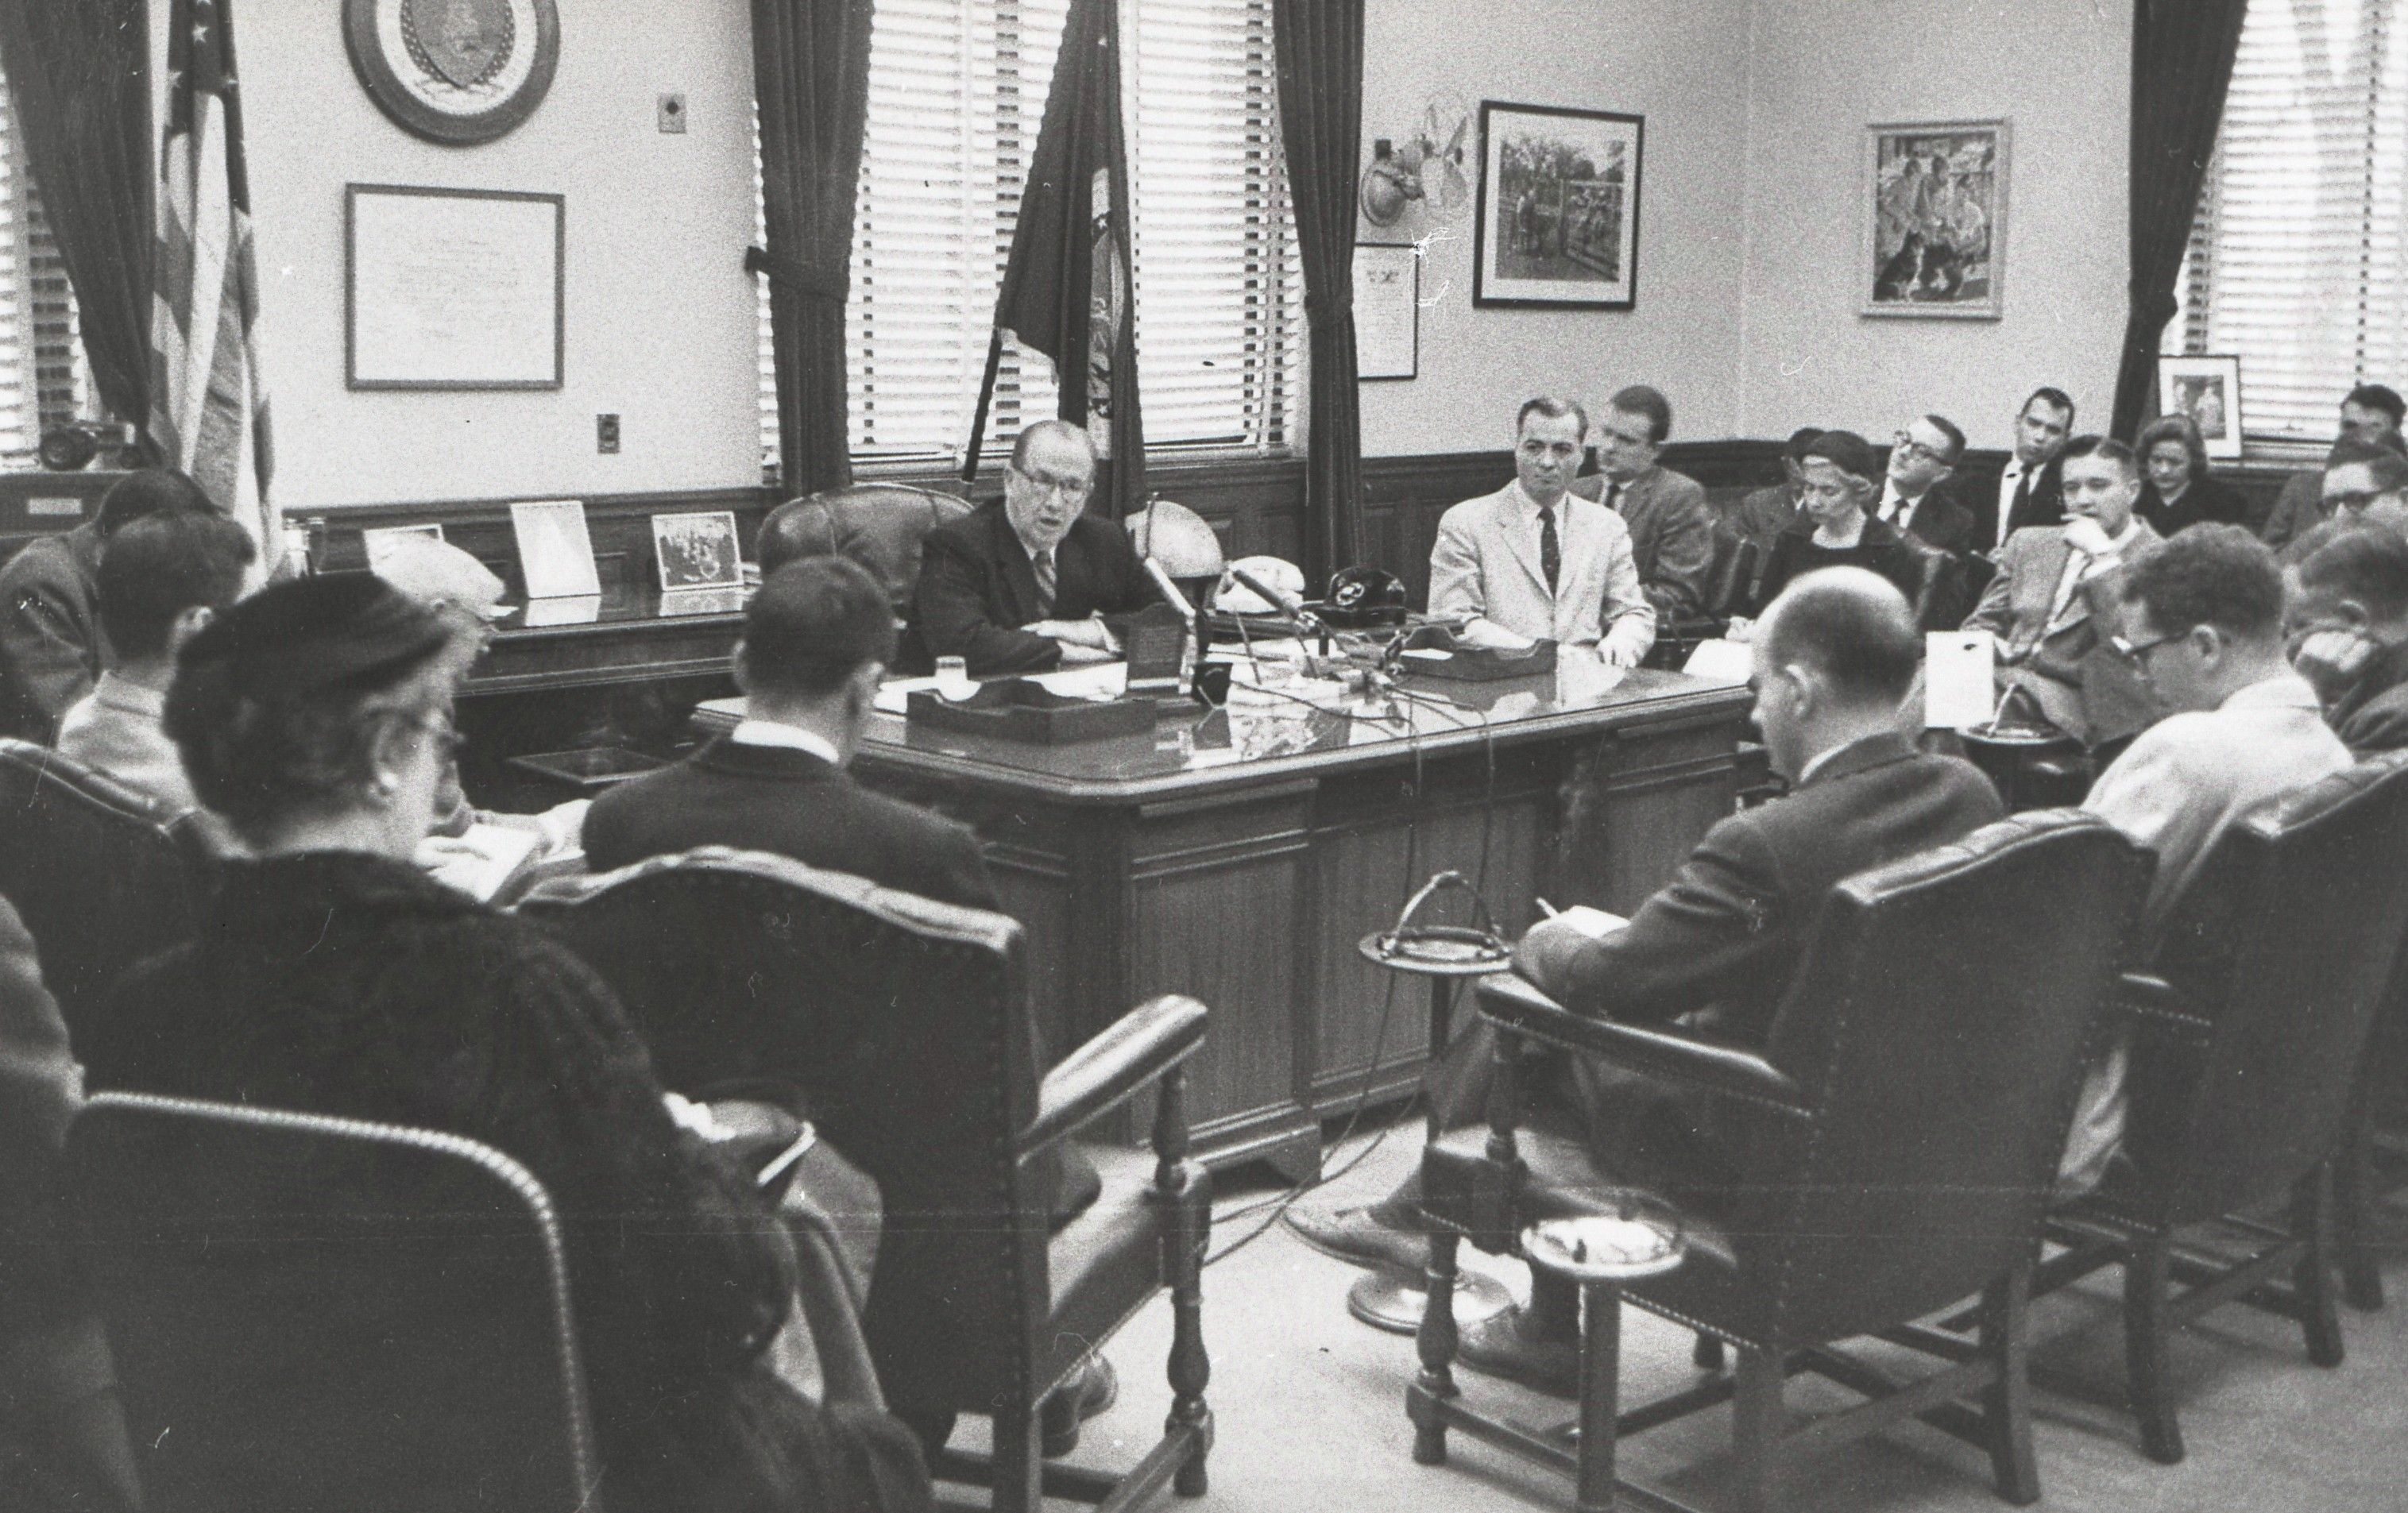 President Benson sitting behind a desk and speaking to a group of men and women.